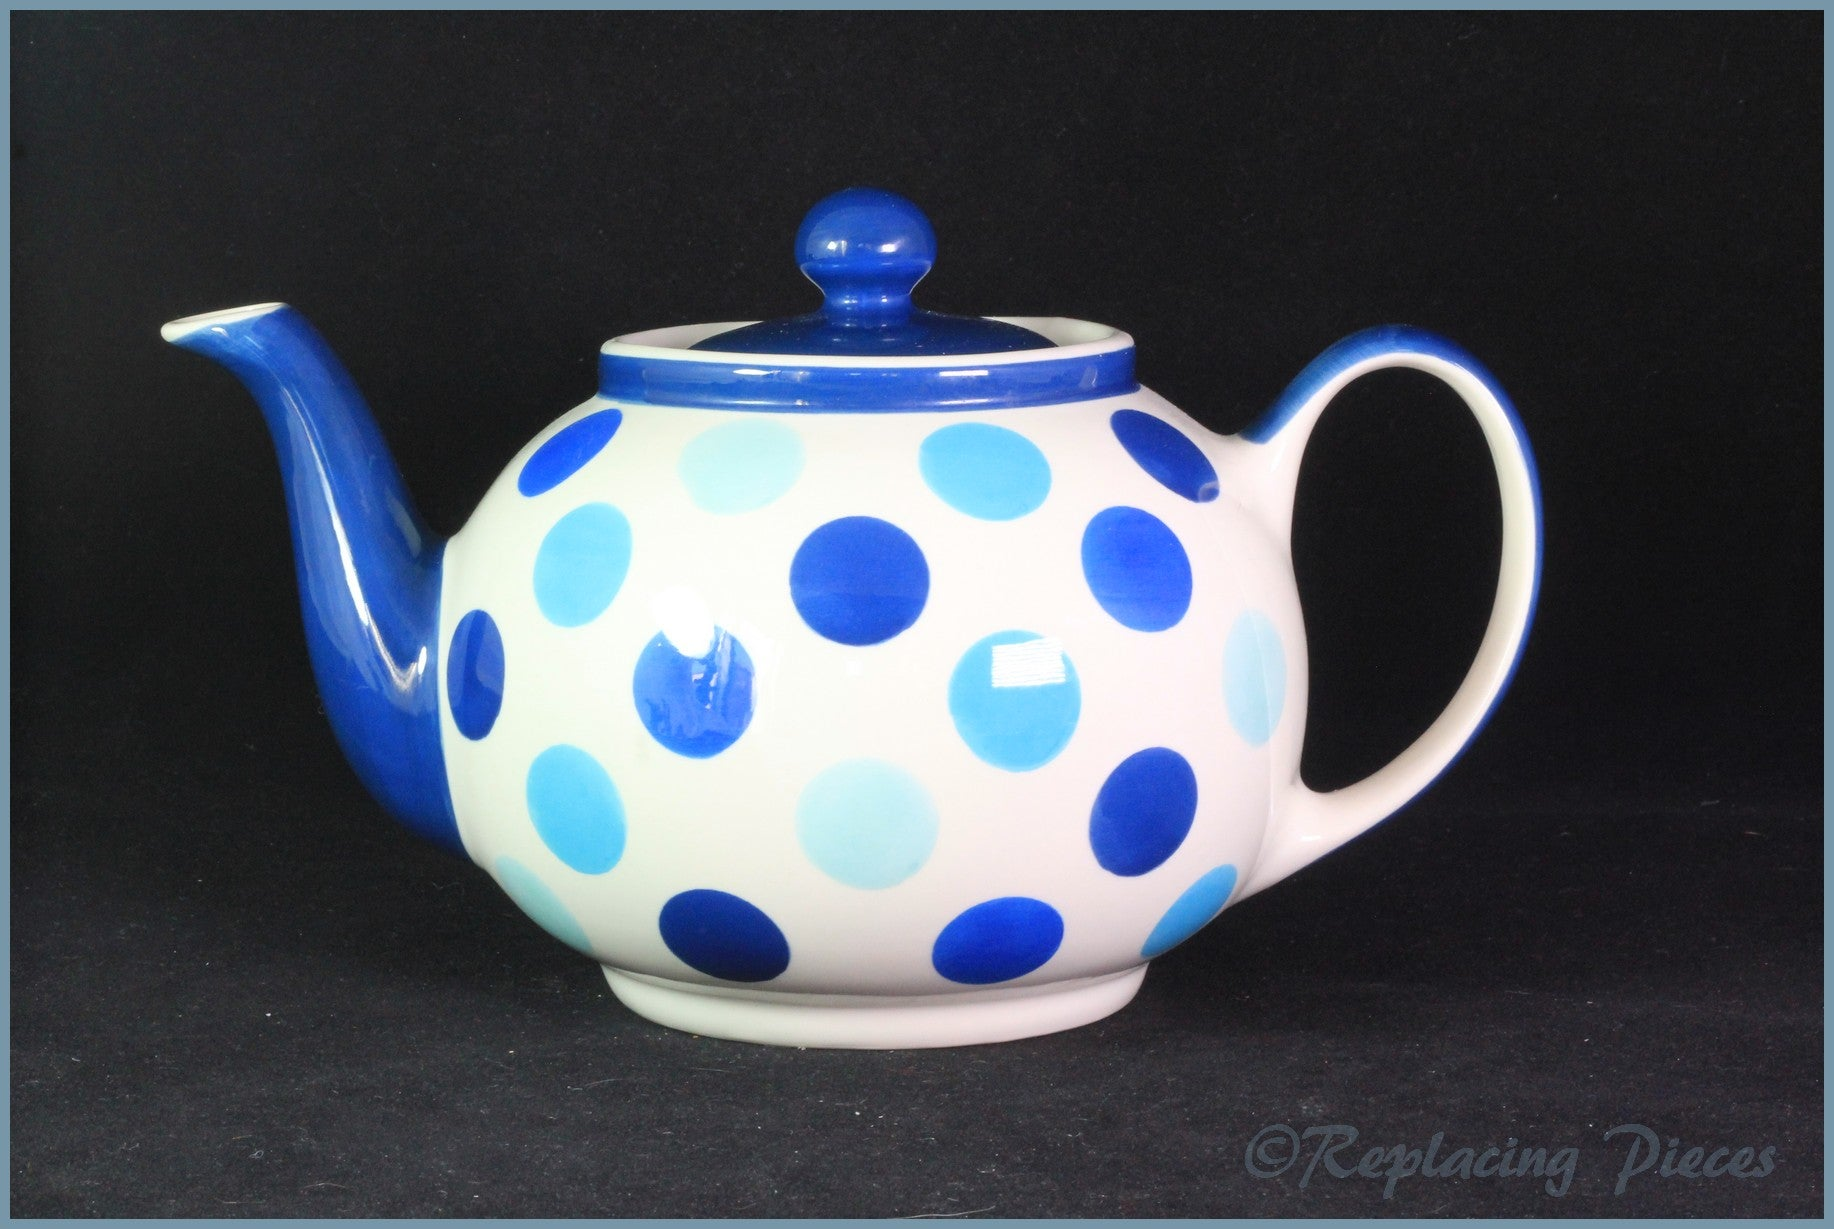 RPW71 - Whittards - 2 Pint Teapot (Blue Spots)